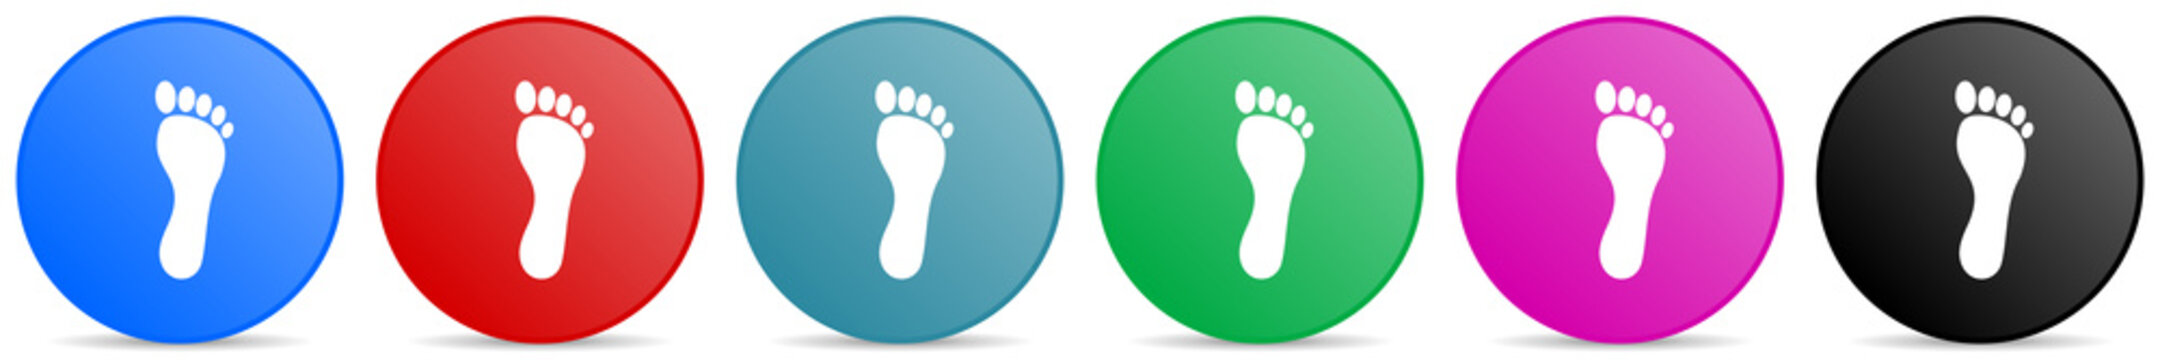 Foot vector icons, set of circle gradient buttons in 6 colors options for webdesign and mobile applications